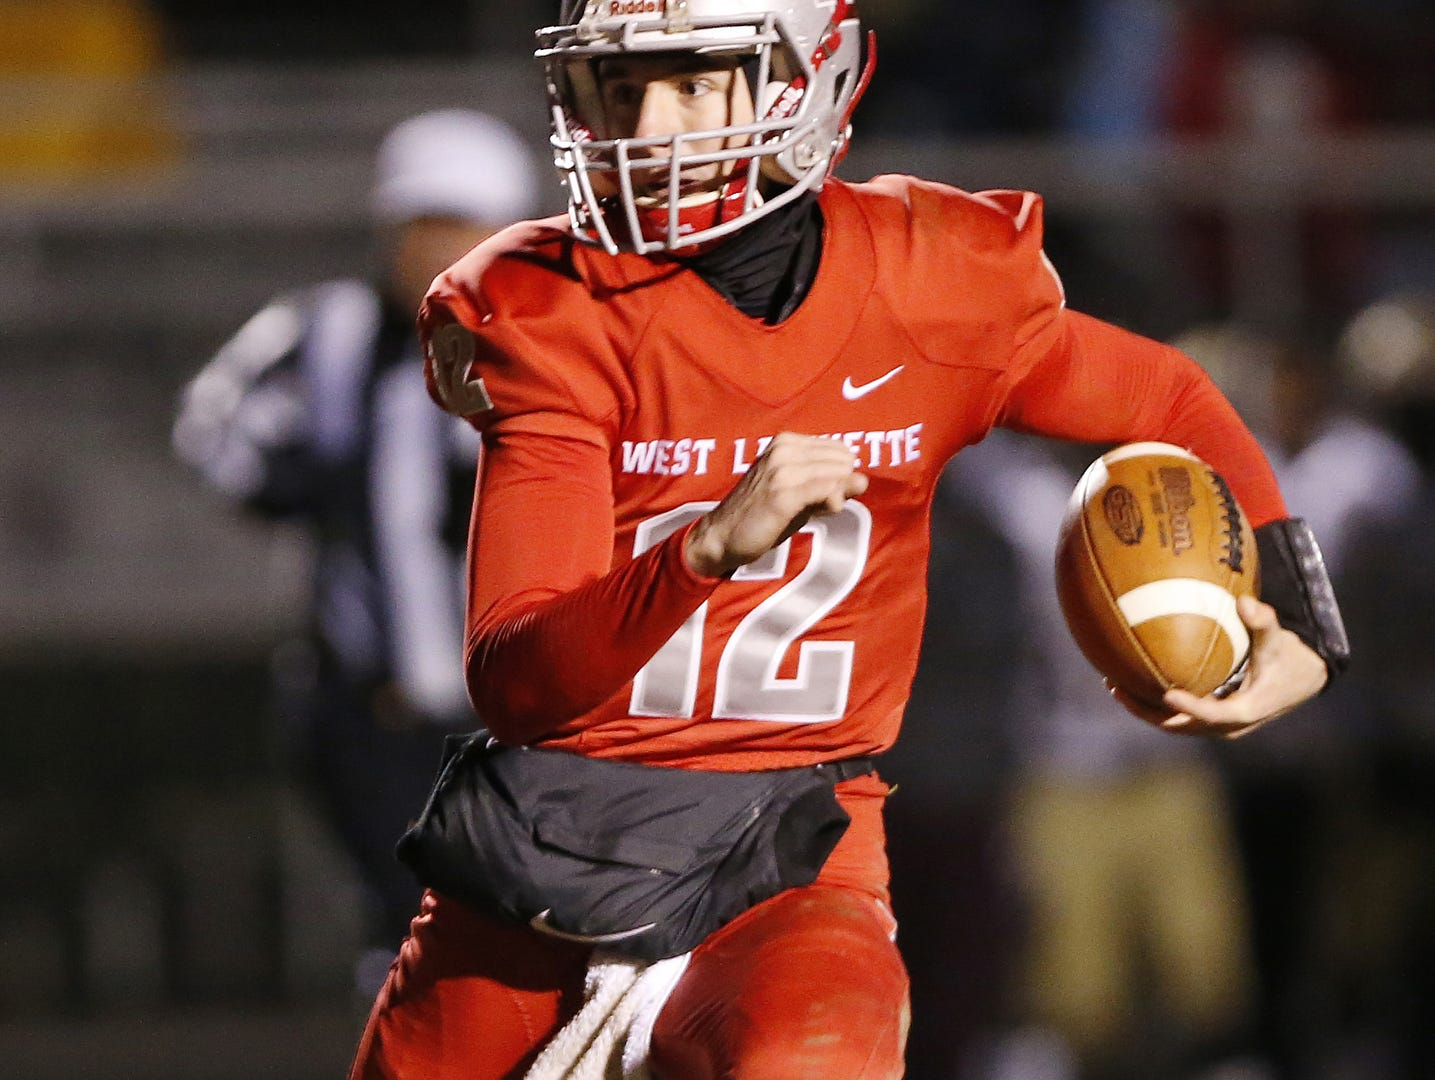 West Lafayette quarterback Kyle Adams with a carry against Brebeuf in the football regional Friday, November 9, 2018, at Gordon Straley Field in West Lafayette. West Lafayette defeated Brebeuf 24-10.